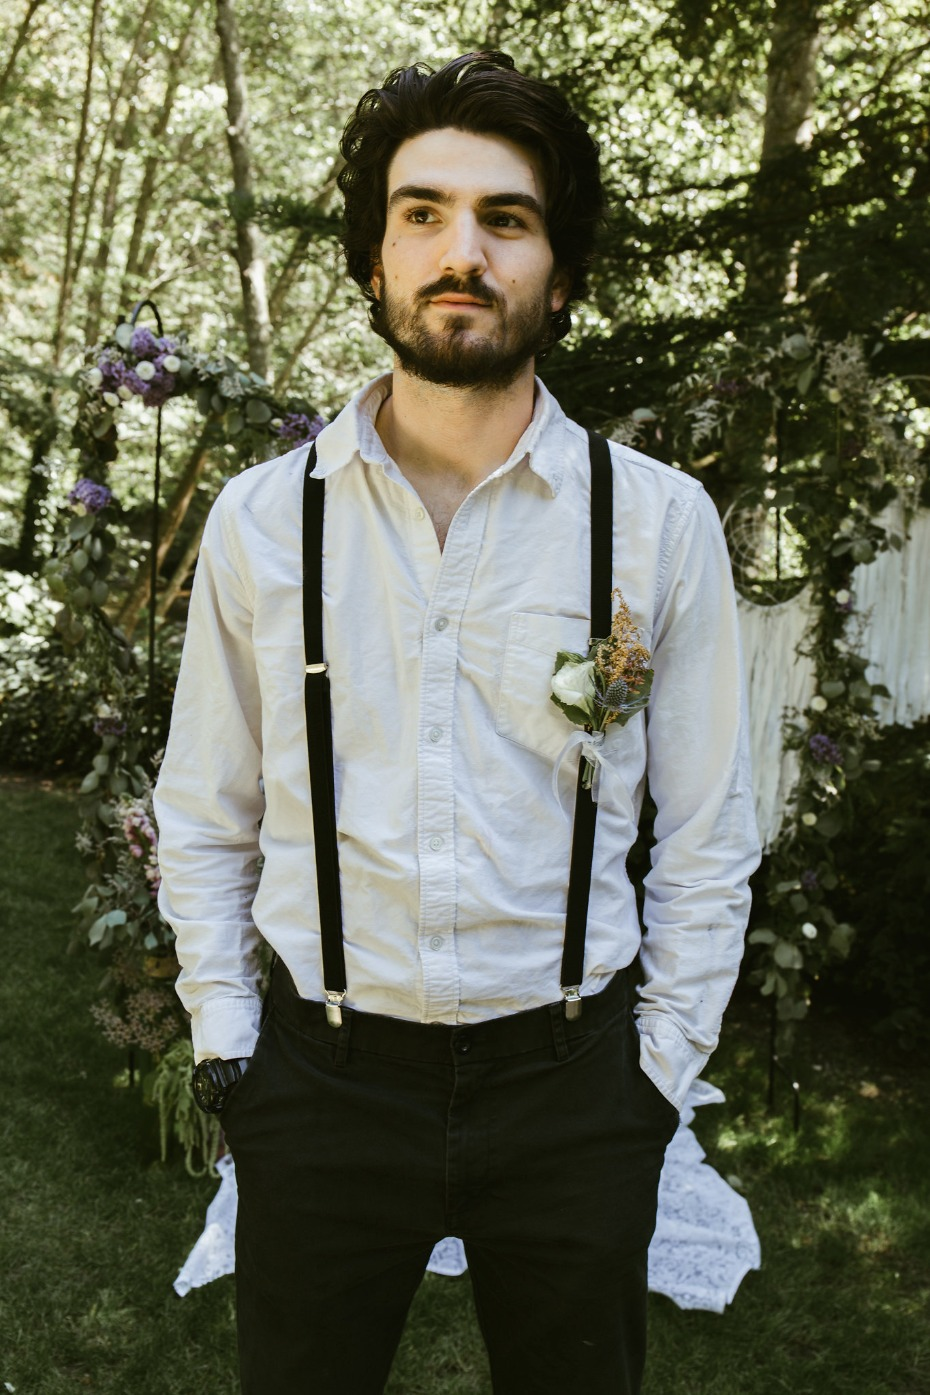 Laid-back look for the groom